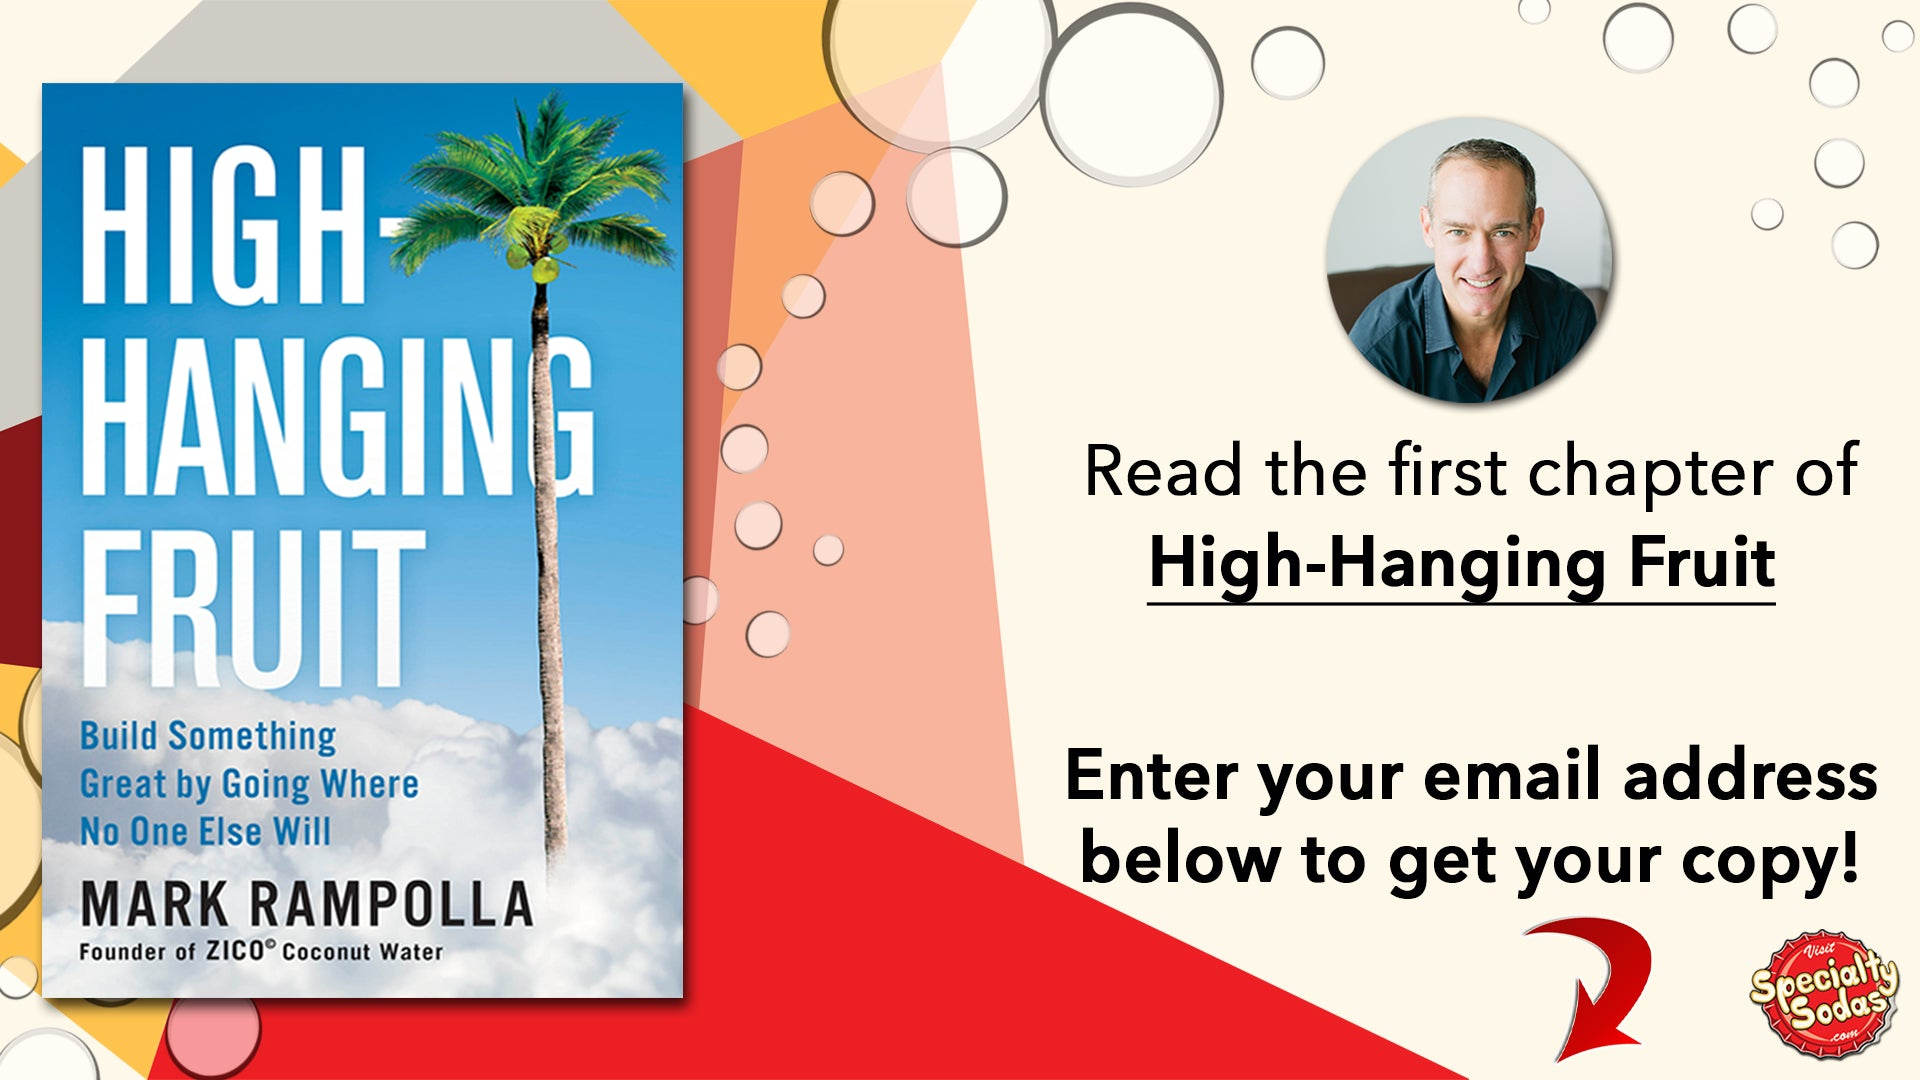 Read the first chapter of High-Hanging Fruit by Mark Rampolla